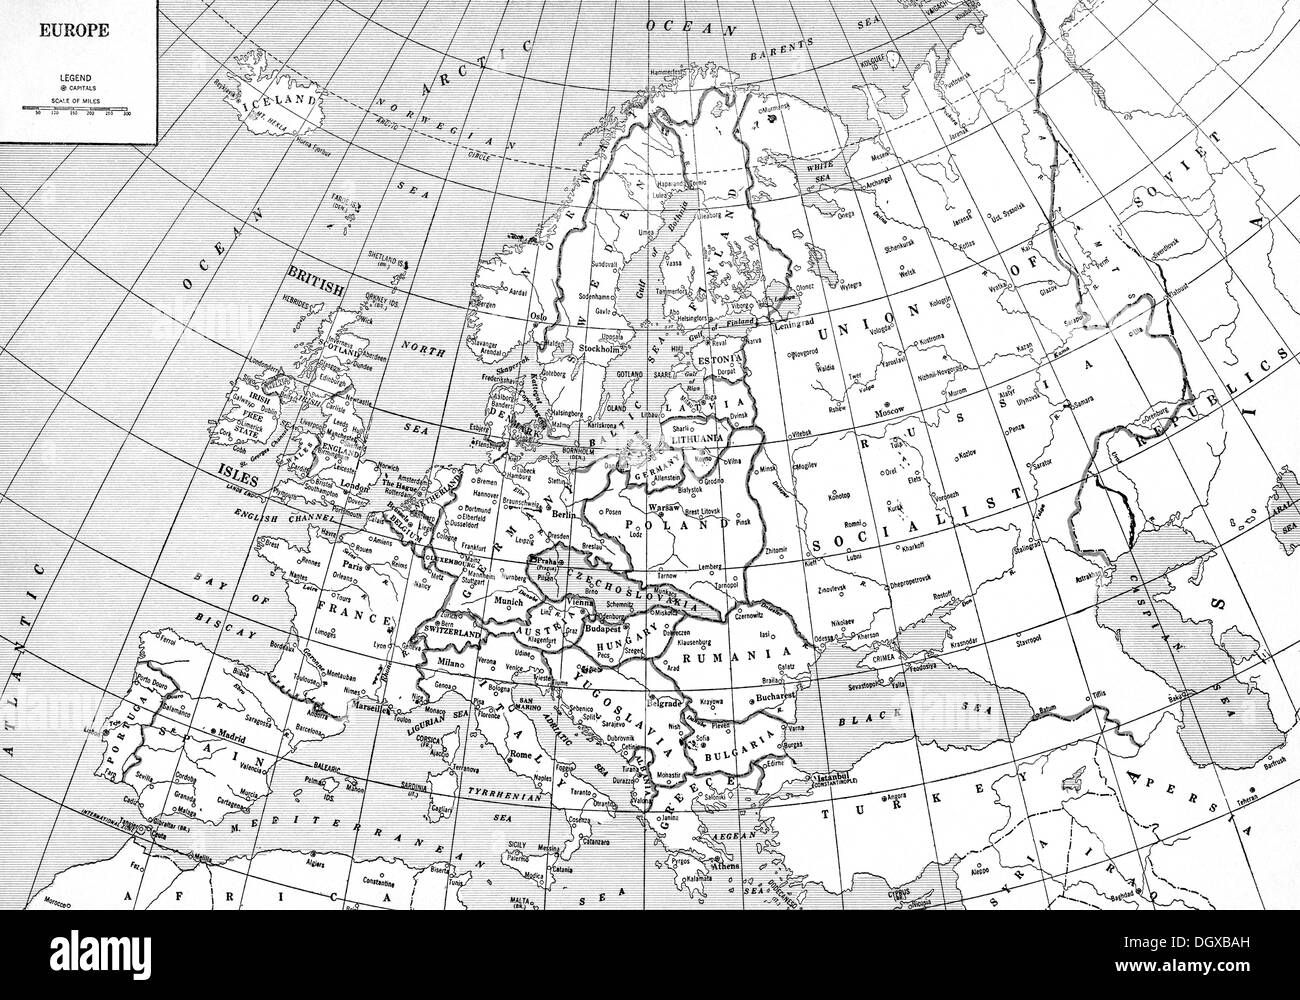 Black Map Of Europe.Map Of Europe Black And White Stock Photos Images Alamy